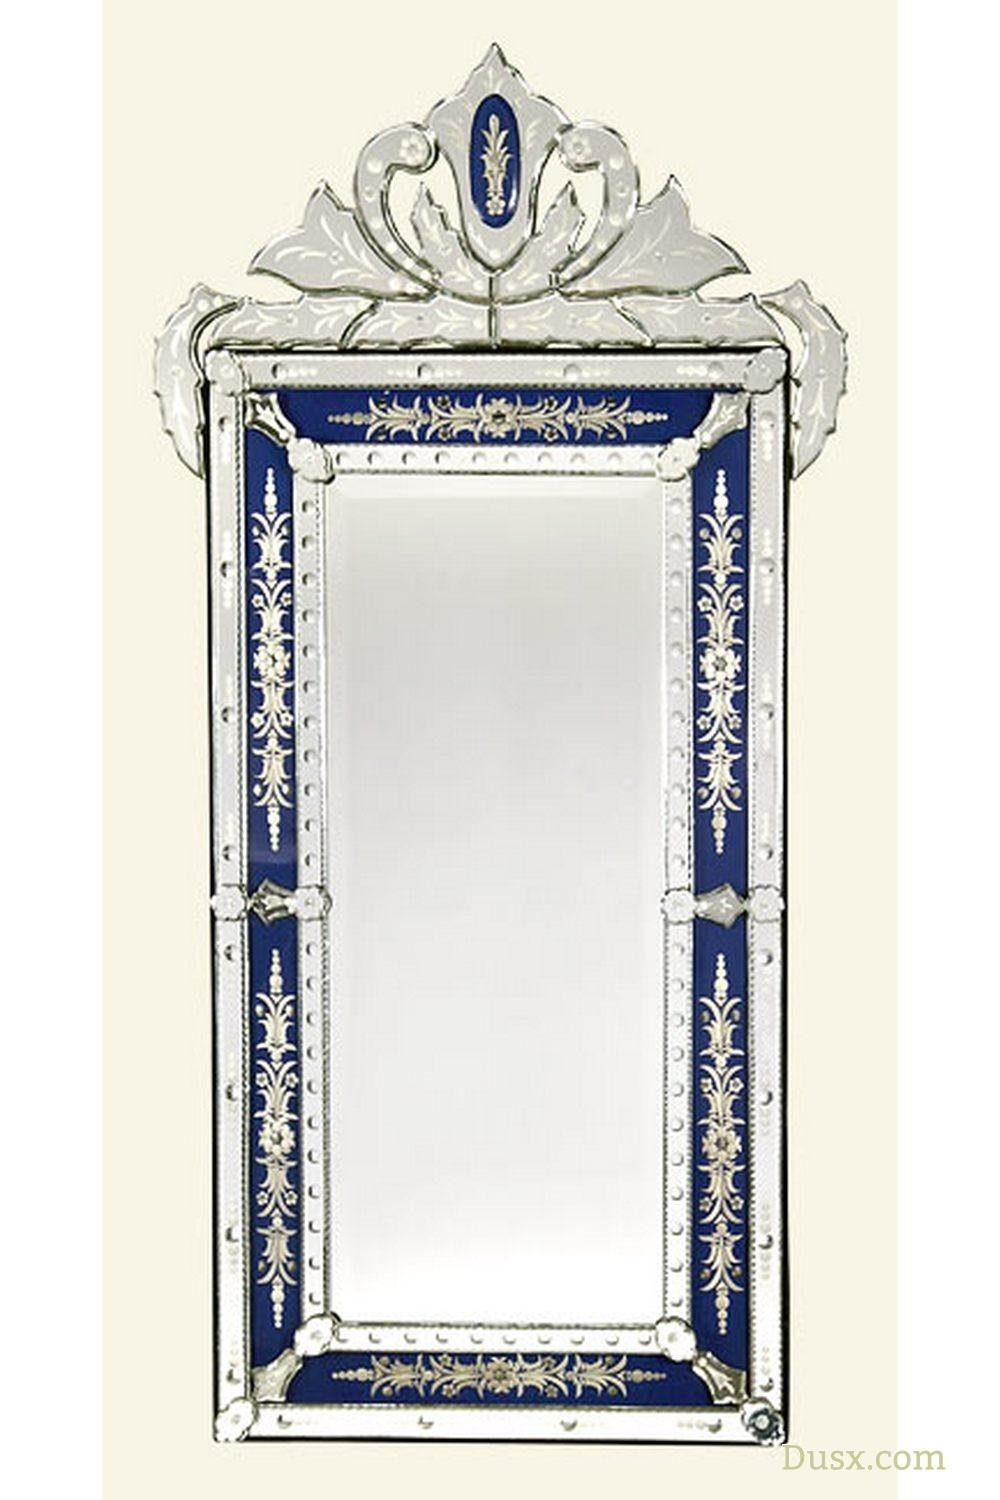 Vintage Venetian Antique Style Blue & Clear Etched Decorative Wall Pertaining To Venetian Mirrors Antique (Image 20 of 20)